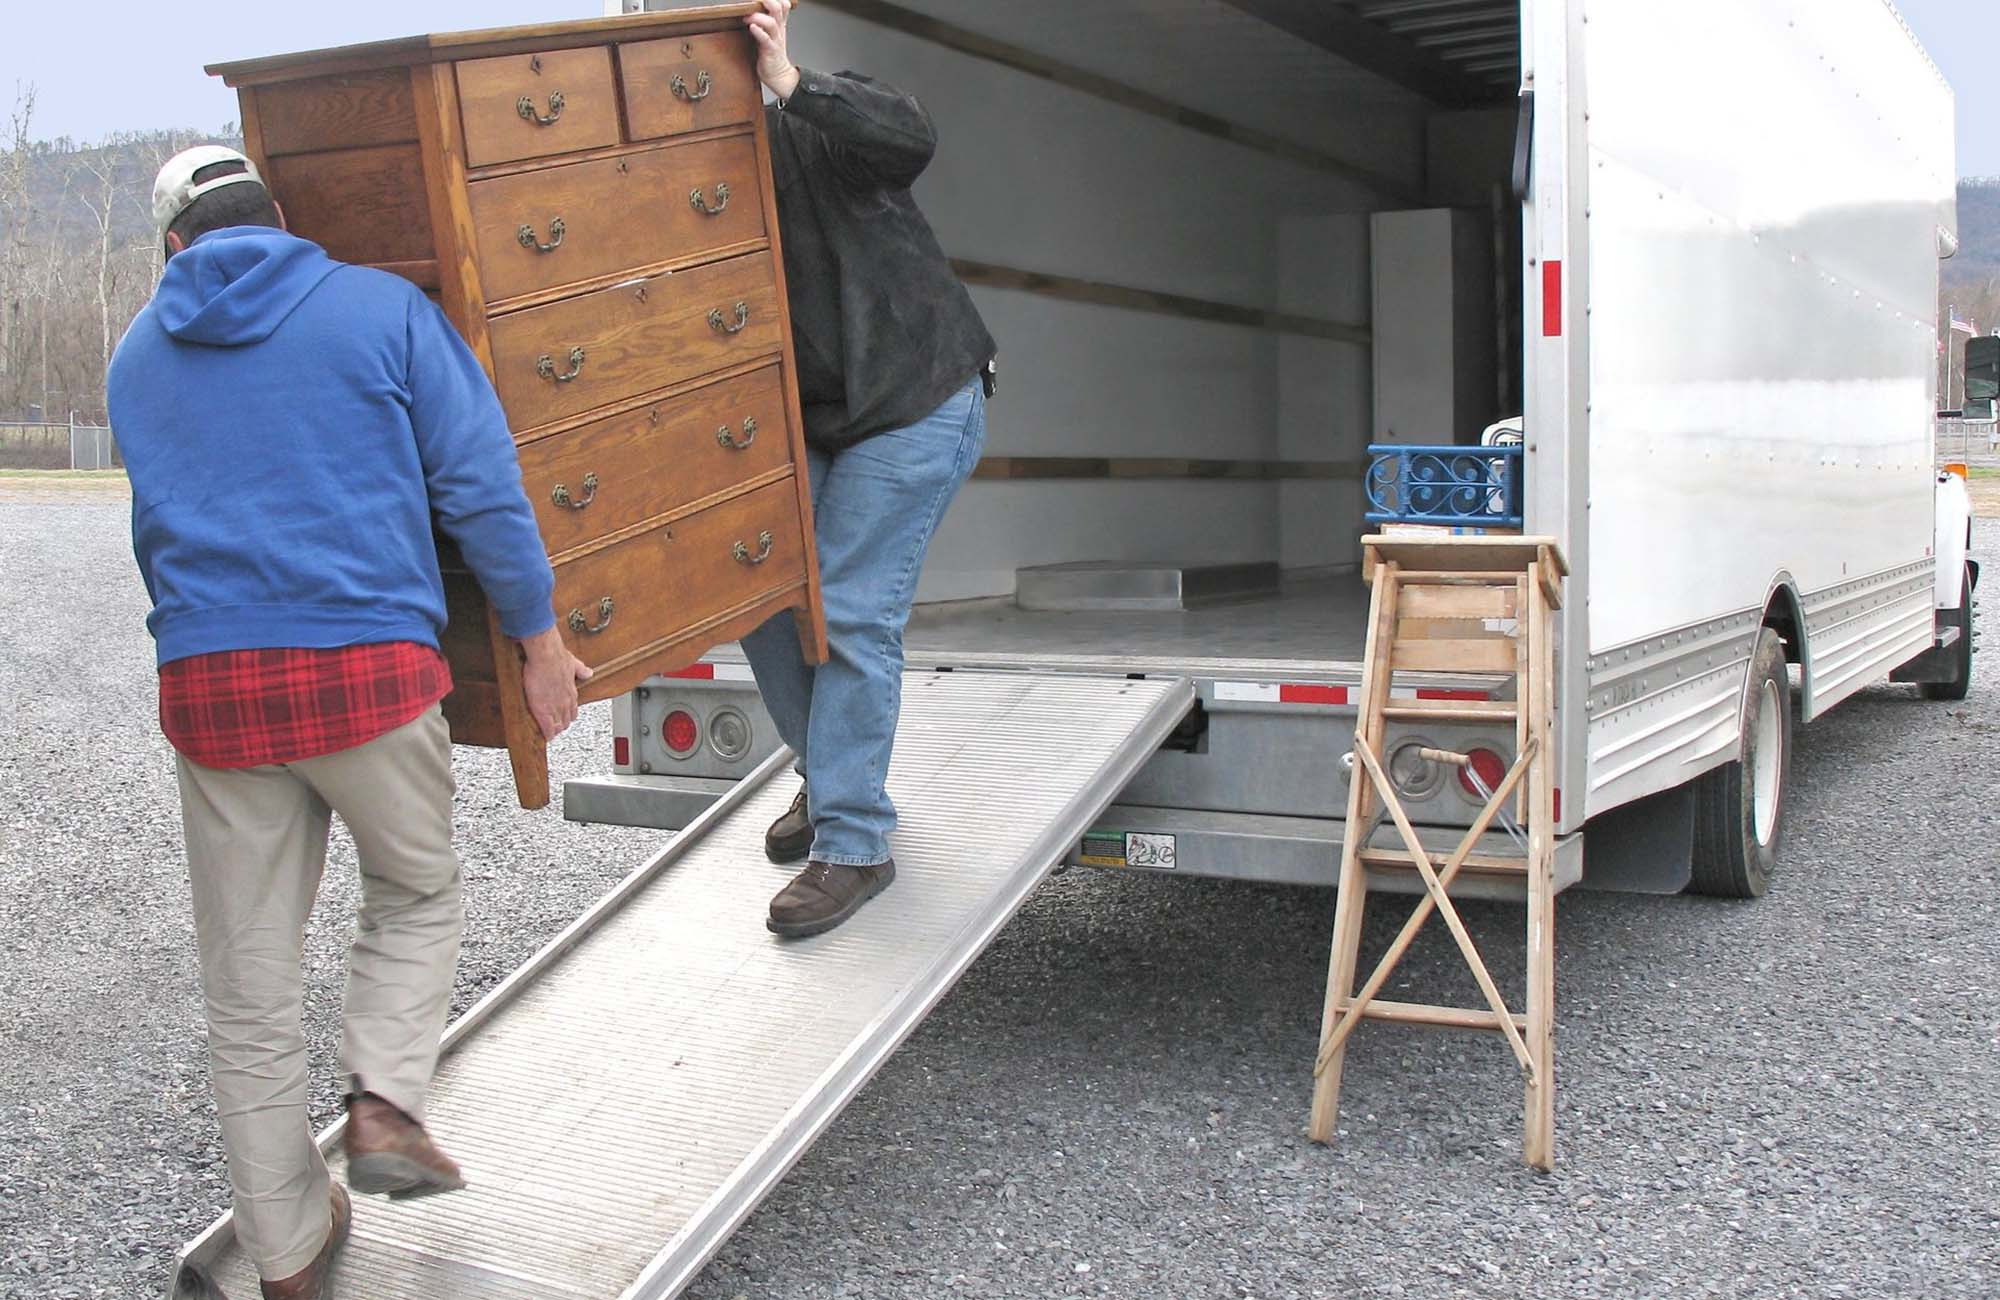 2 men lifting chest of drawers from van